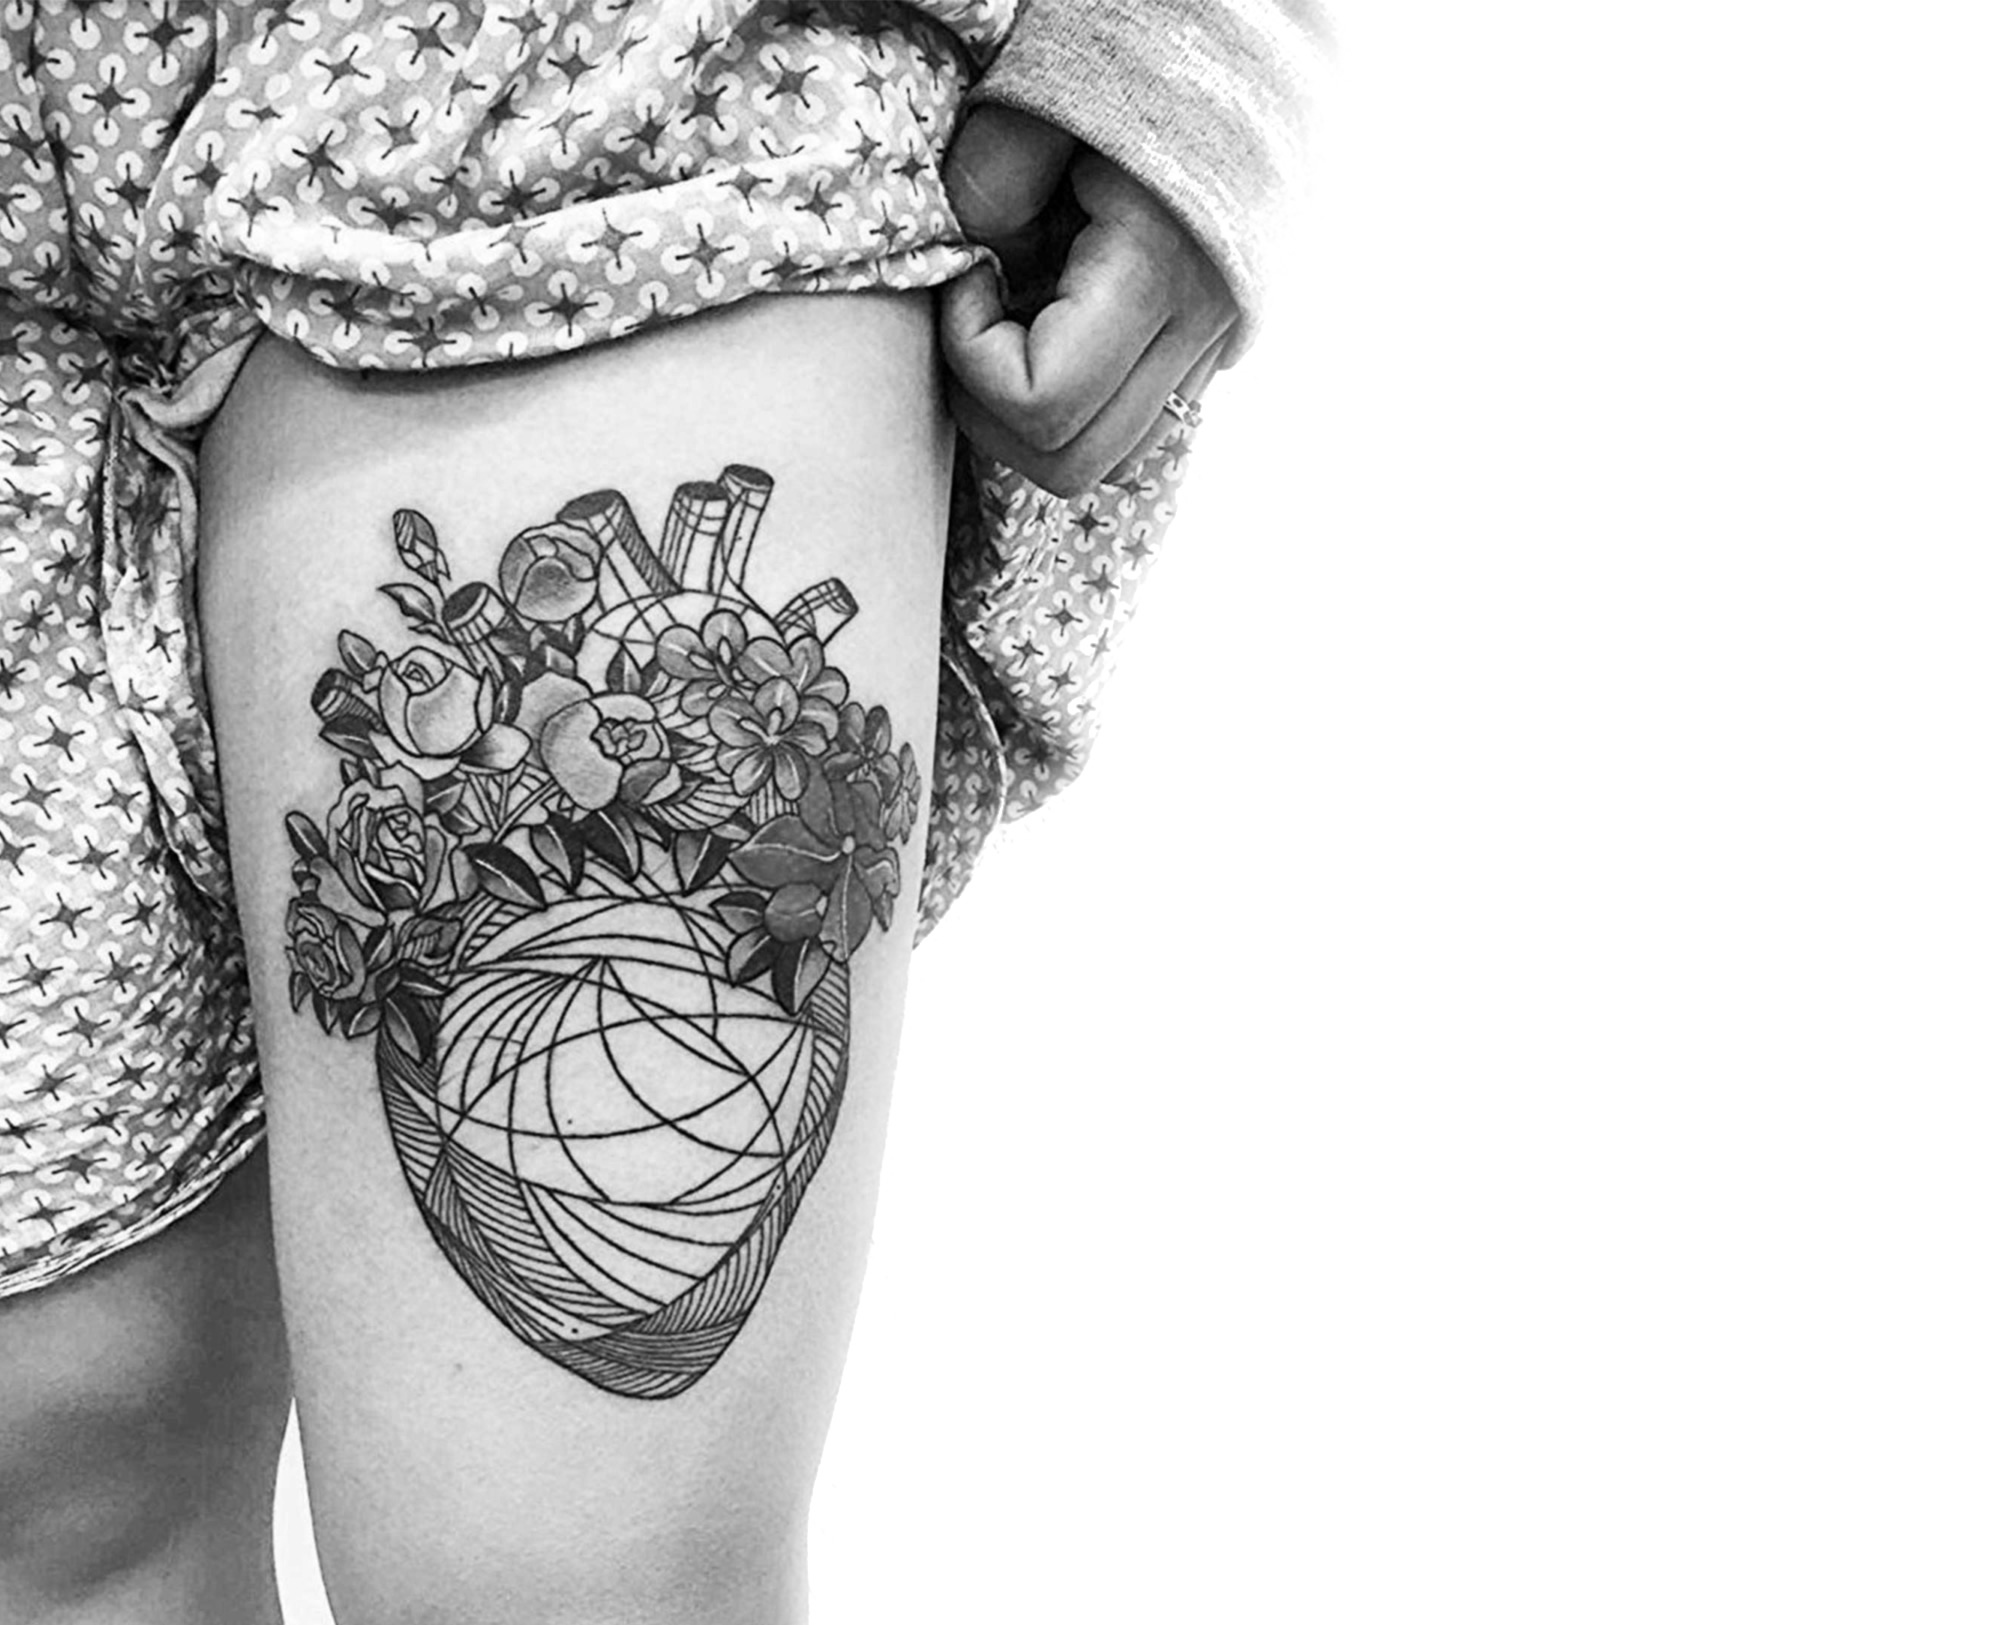 Continuous Line Tattoos in Constant Motion by Stan Bree